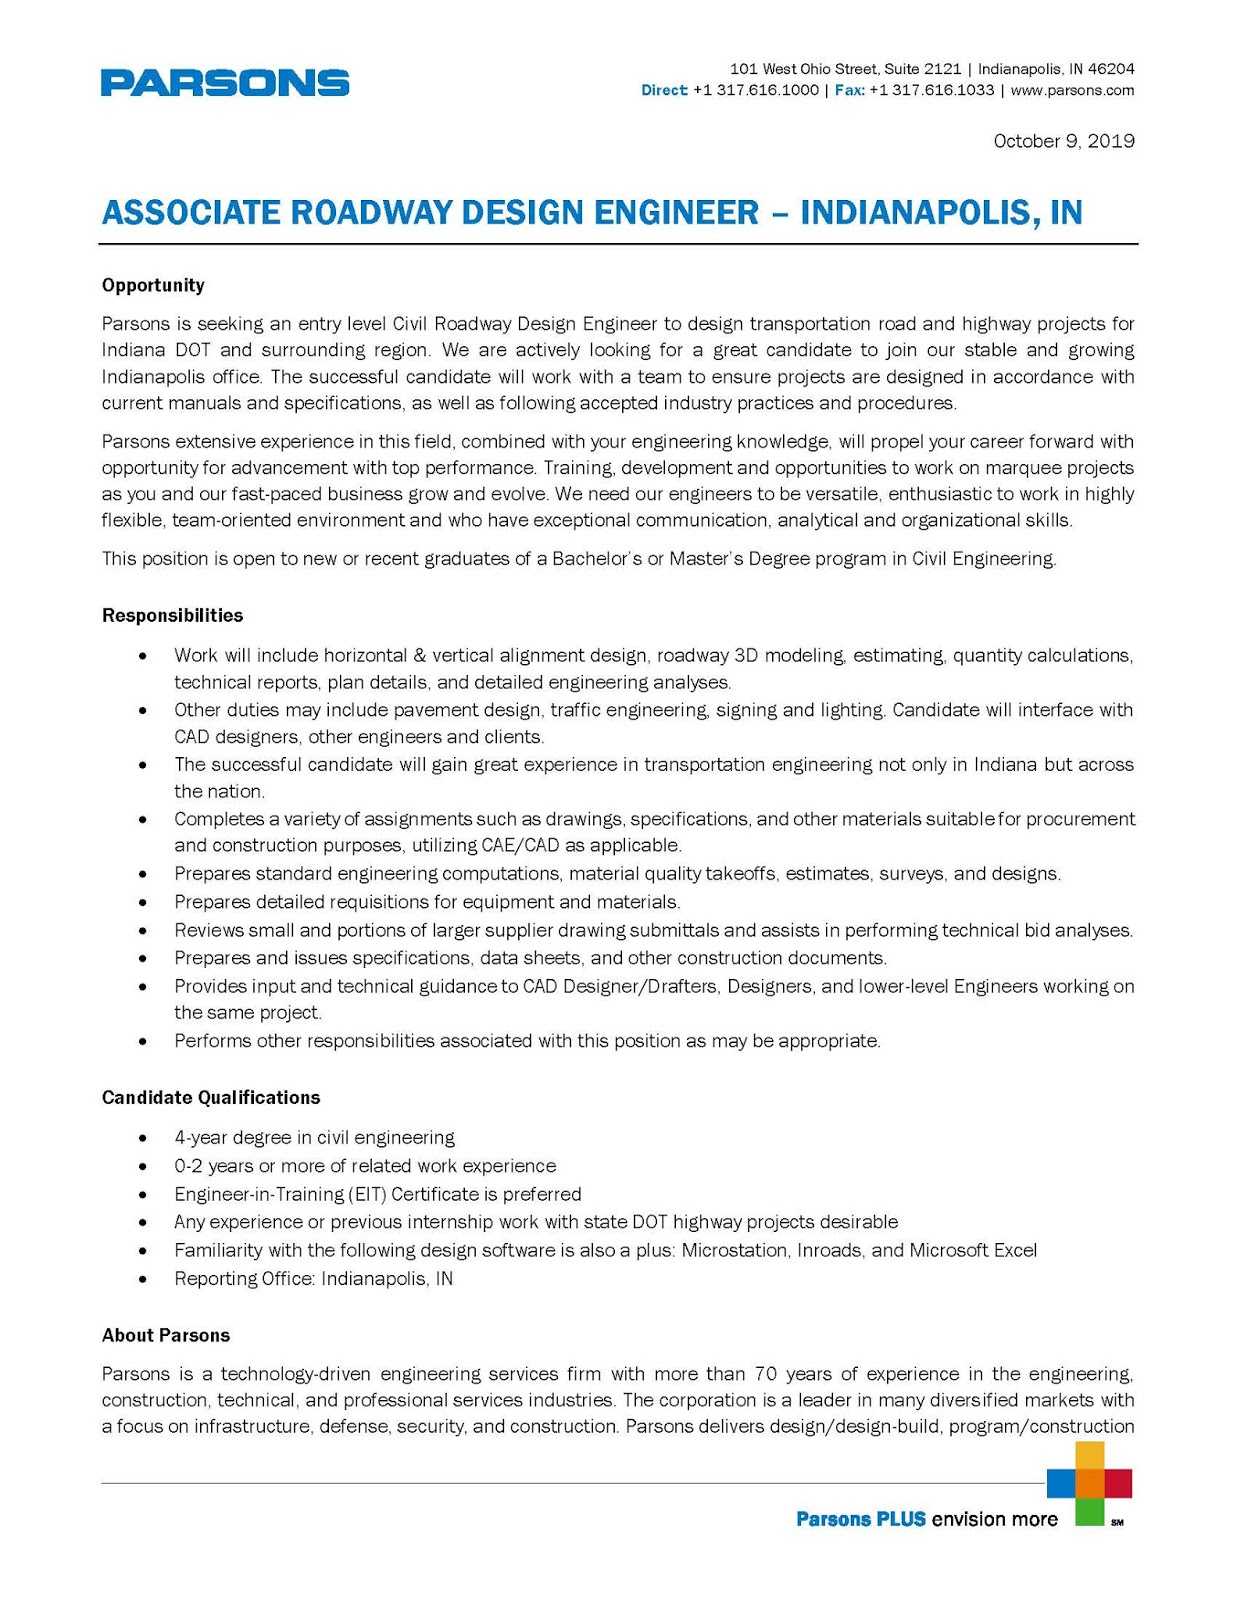 Purdue Lyles School Of Civil Engineering Student Information And Updates Parsons Associate Roadway Design Engineer Indianapolis In